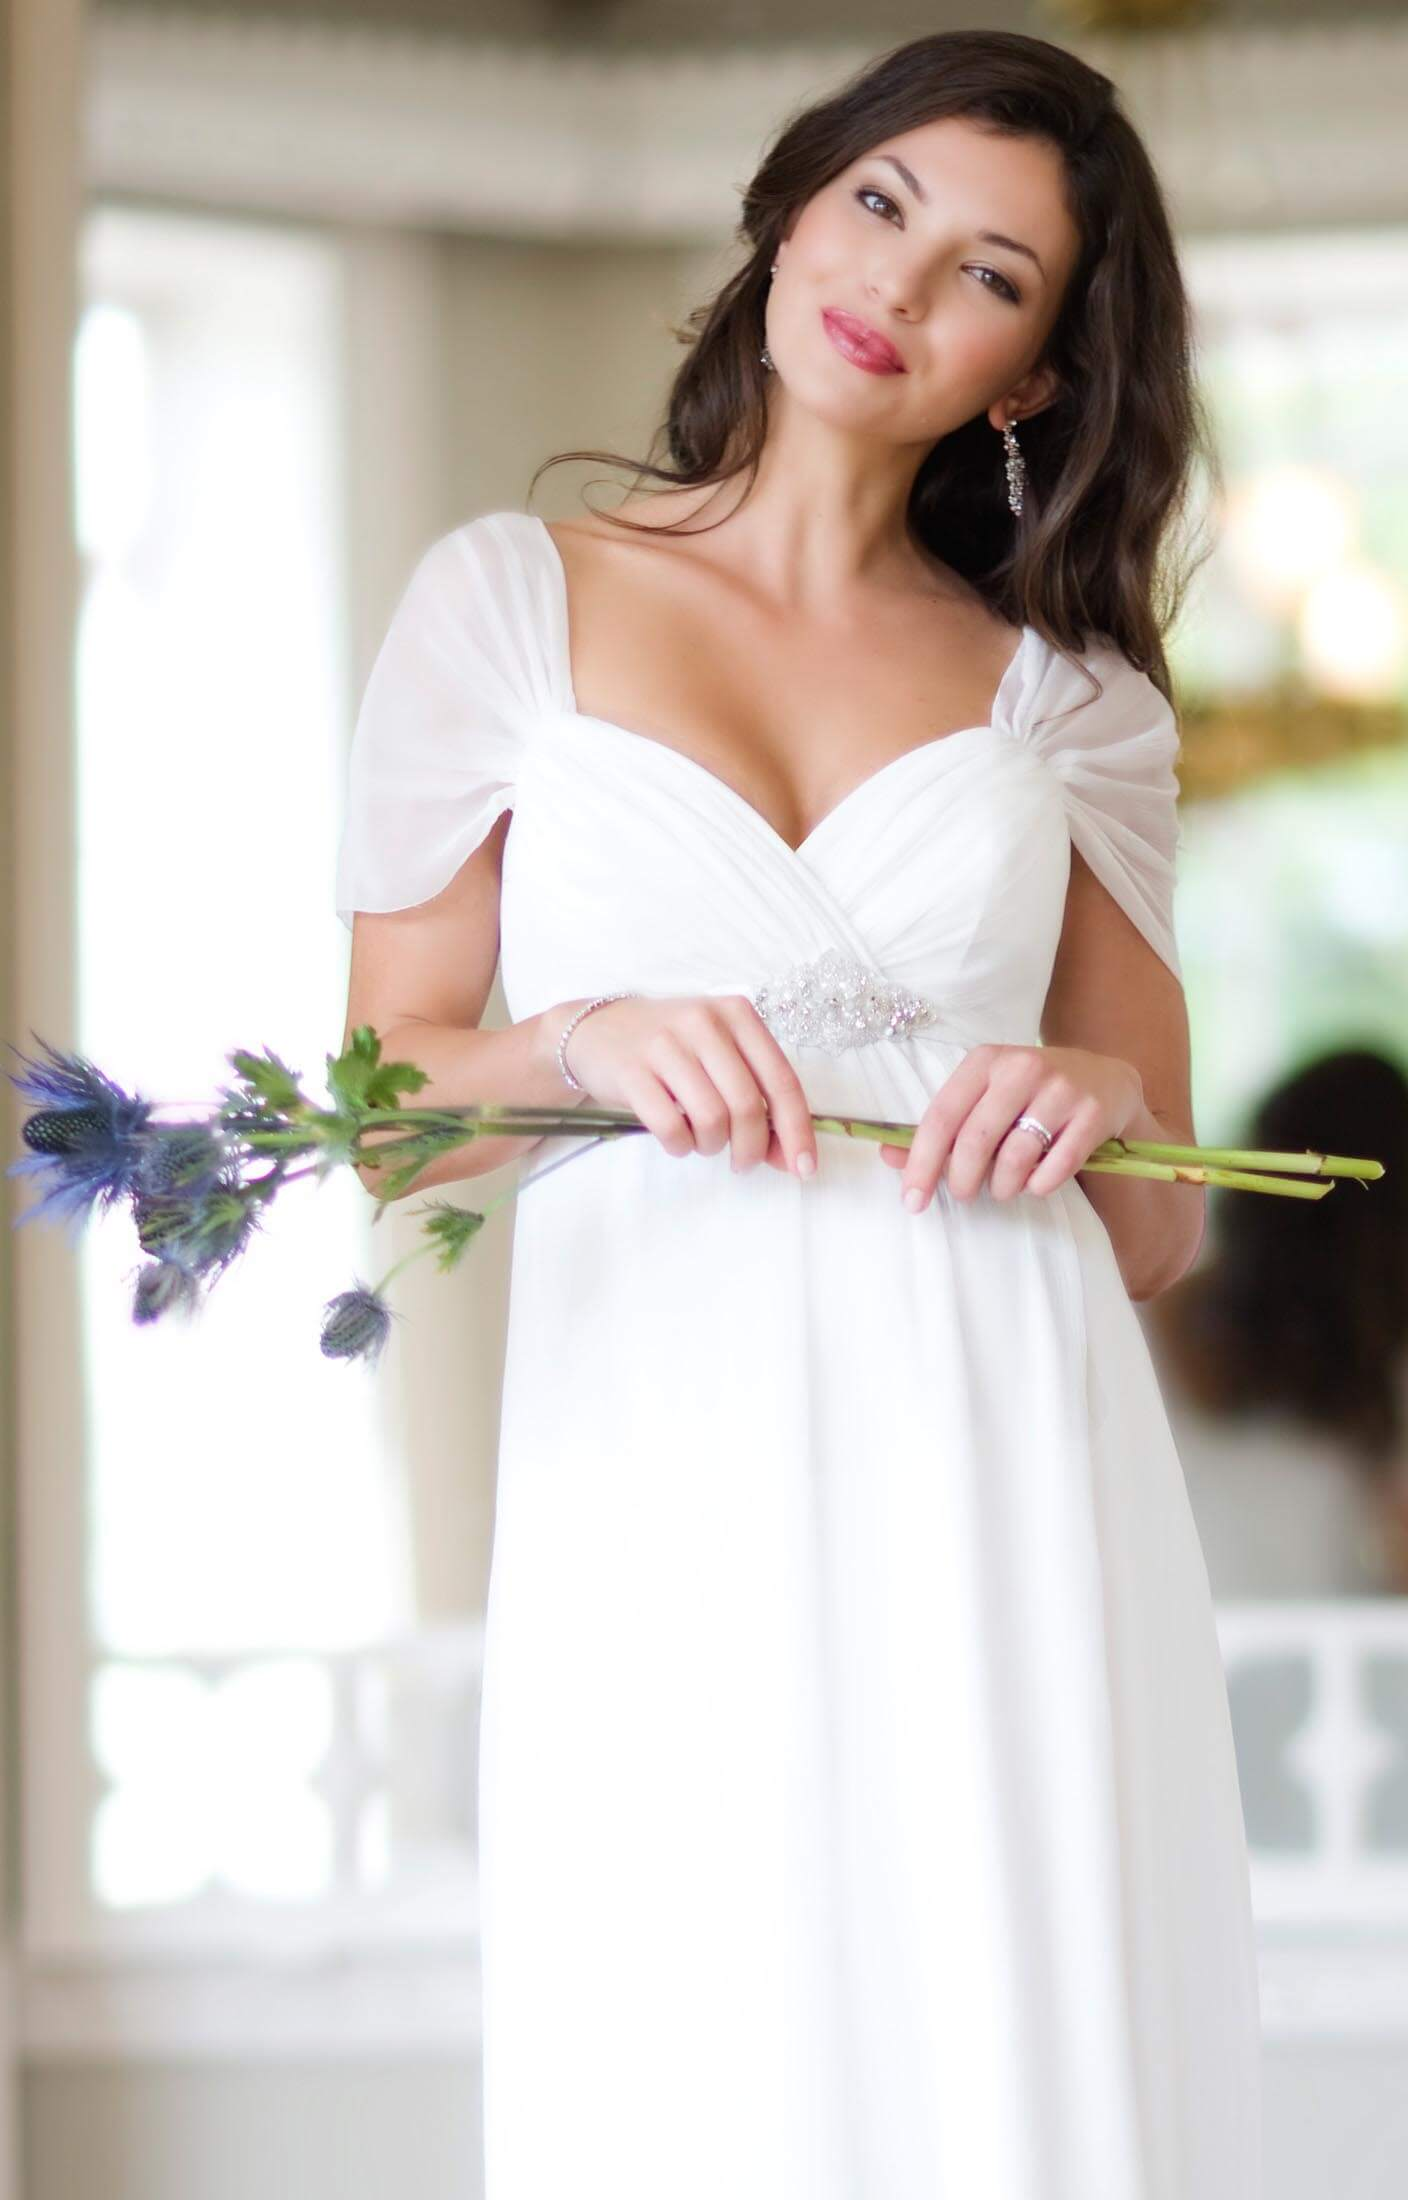 Silk sophia maternity wedding gown ivory maternity wedding silk sophia maternity wedding gown ivory maternity wedding dresses evening wear and party clothes by tiffany rose ombrellifo Image collections